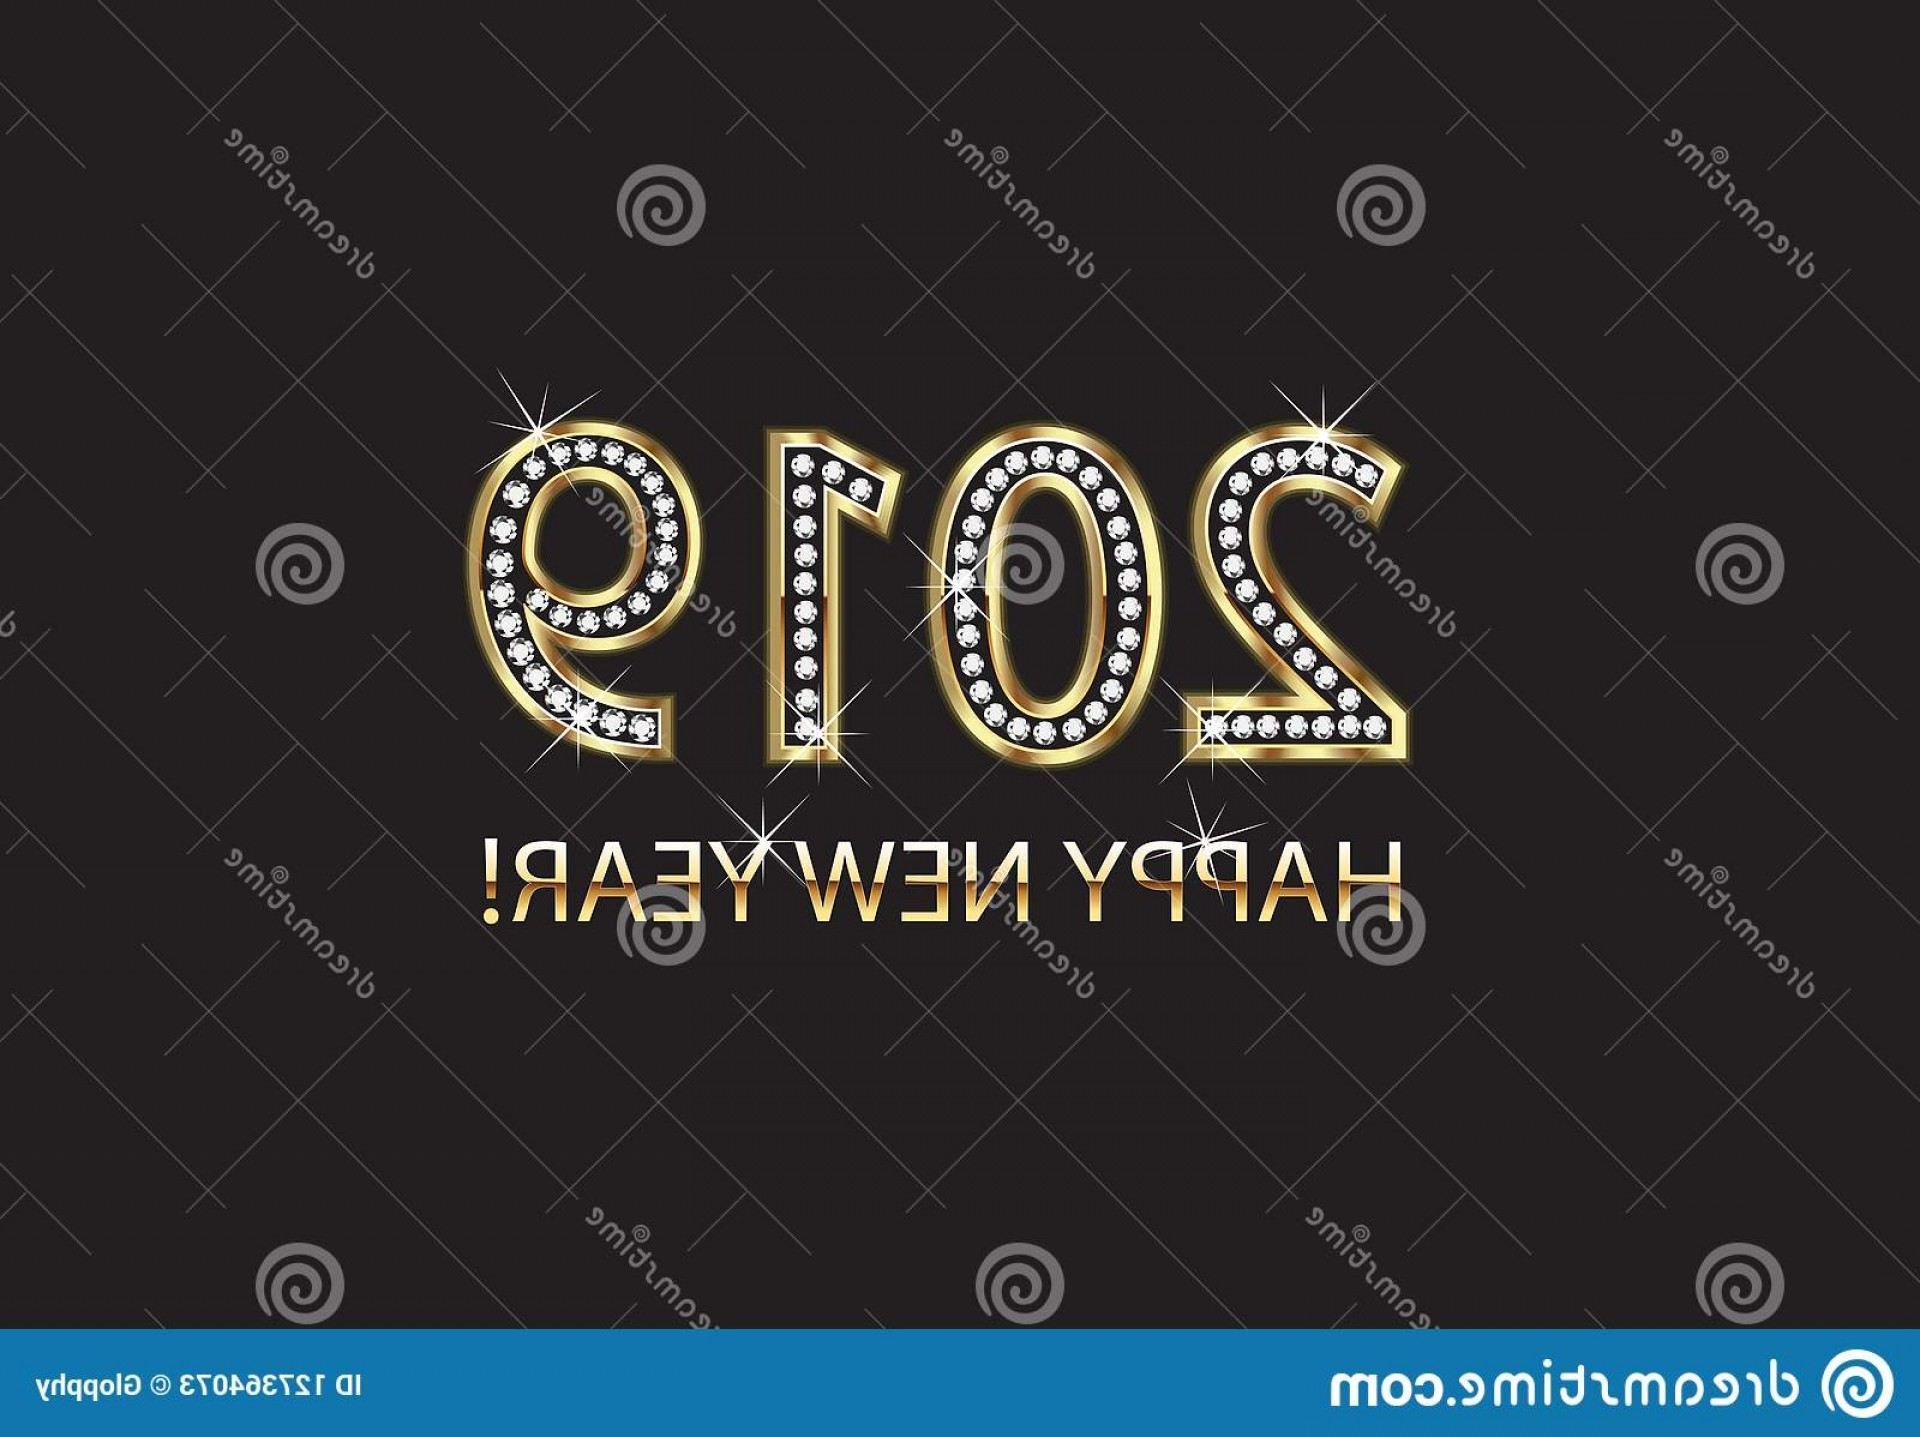 Bling Logo Vector: Happy New Year Gold Background Vector Diamonds Bling Design Your Luxury Party Image